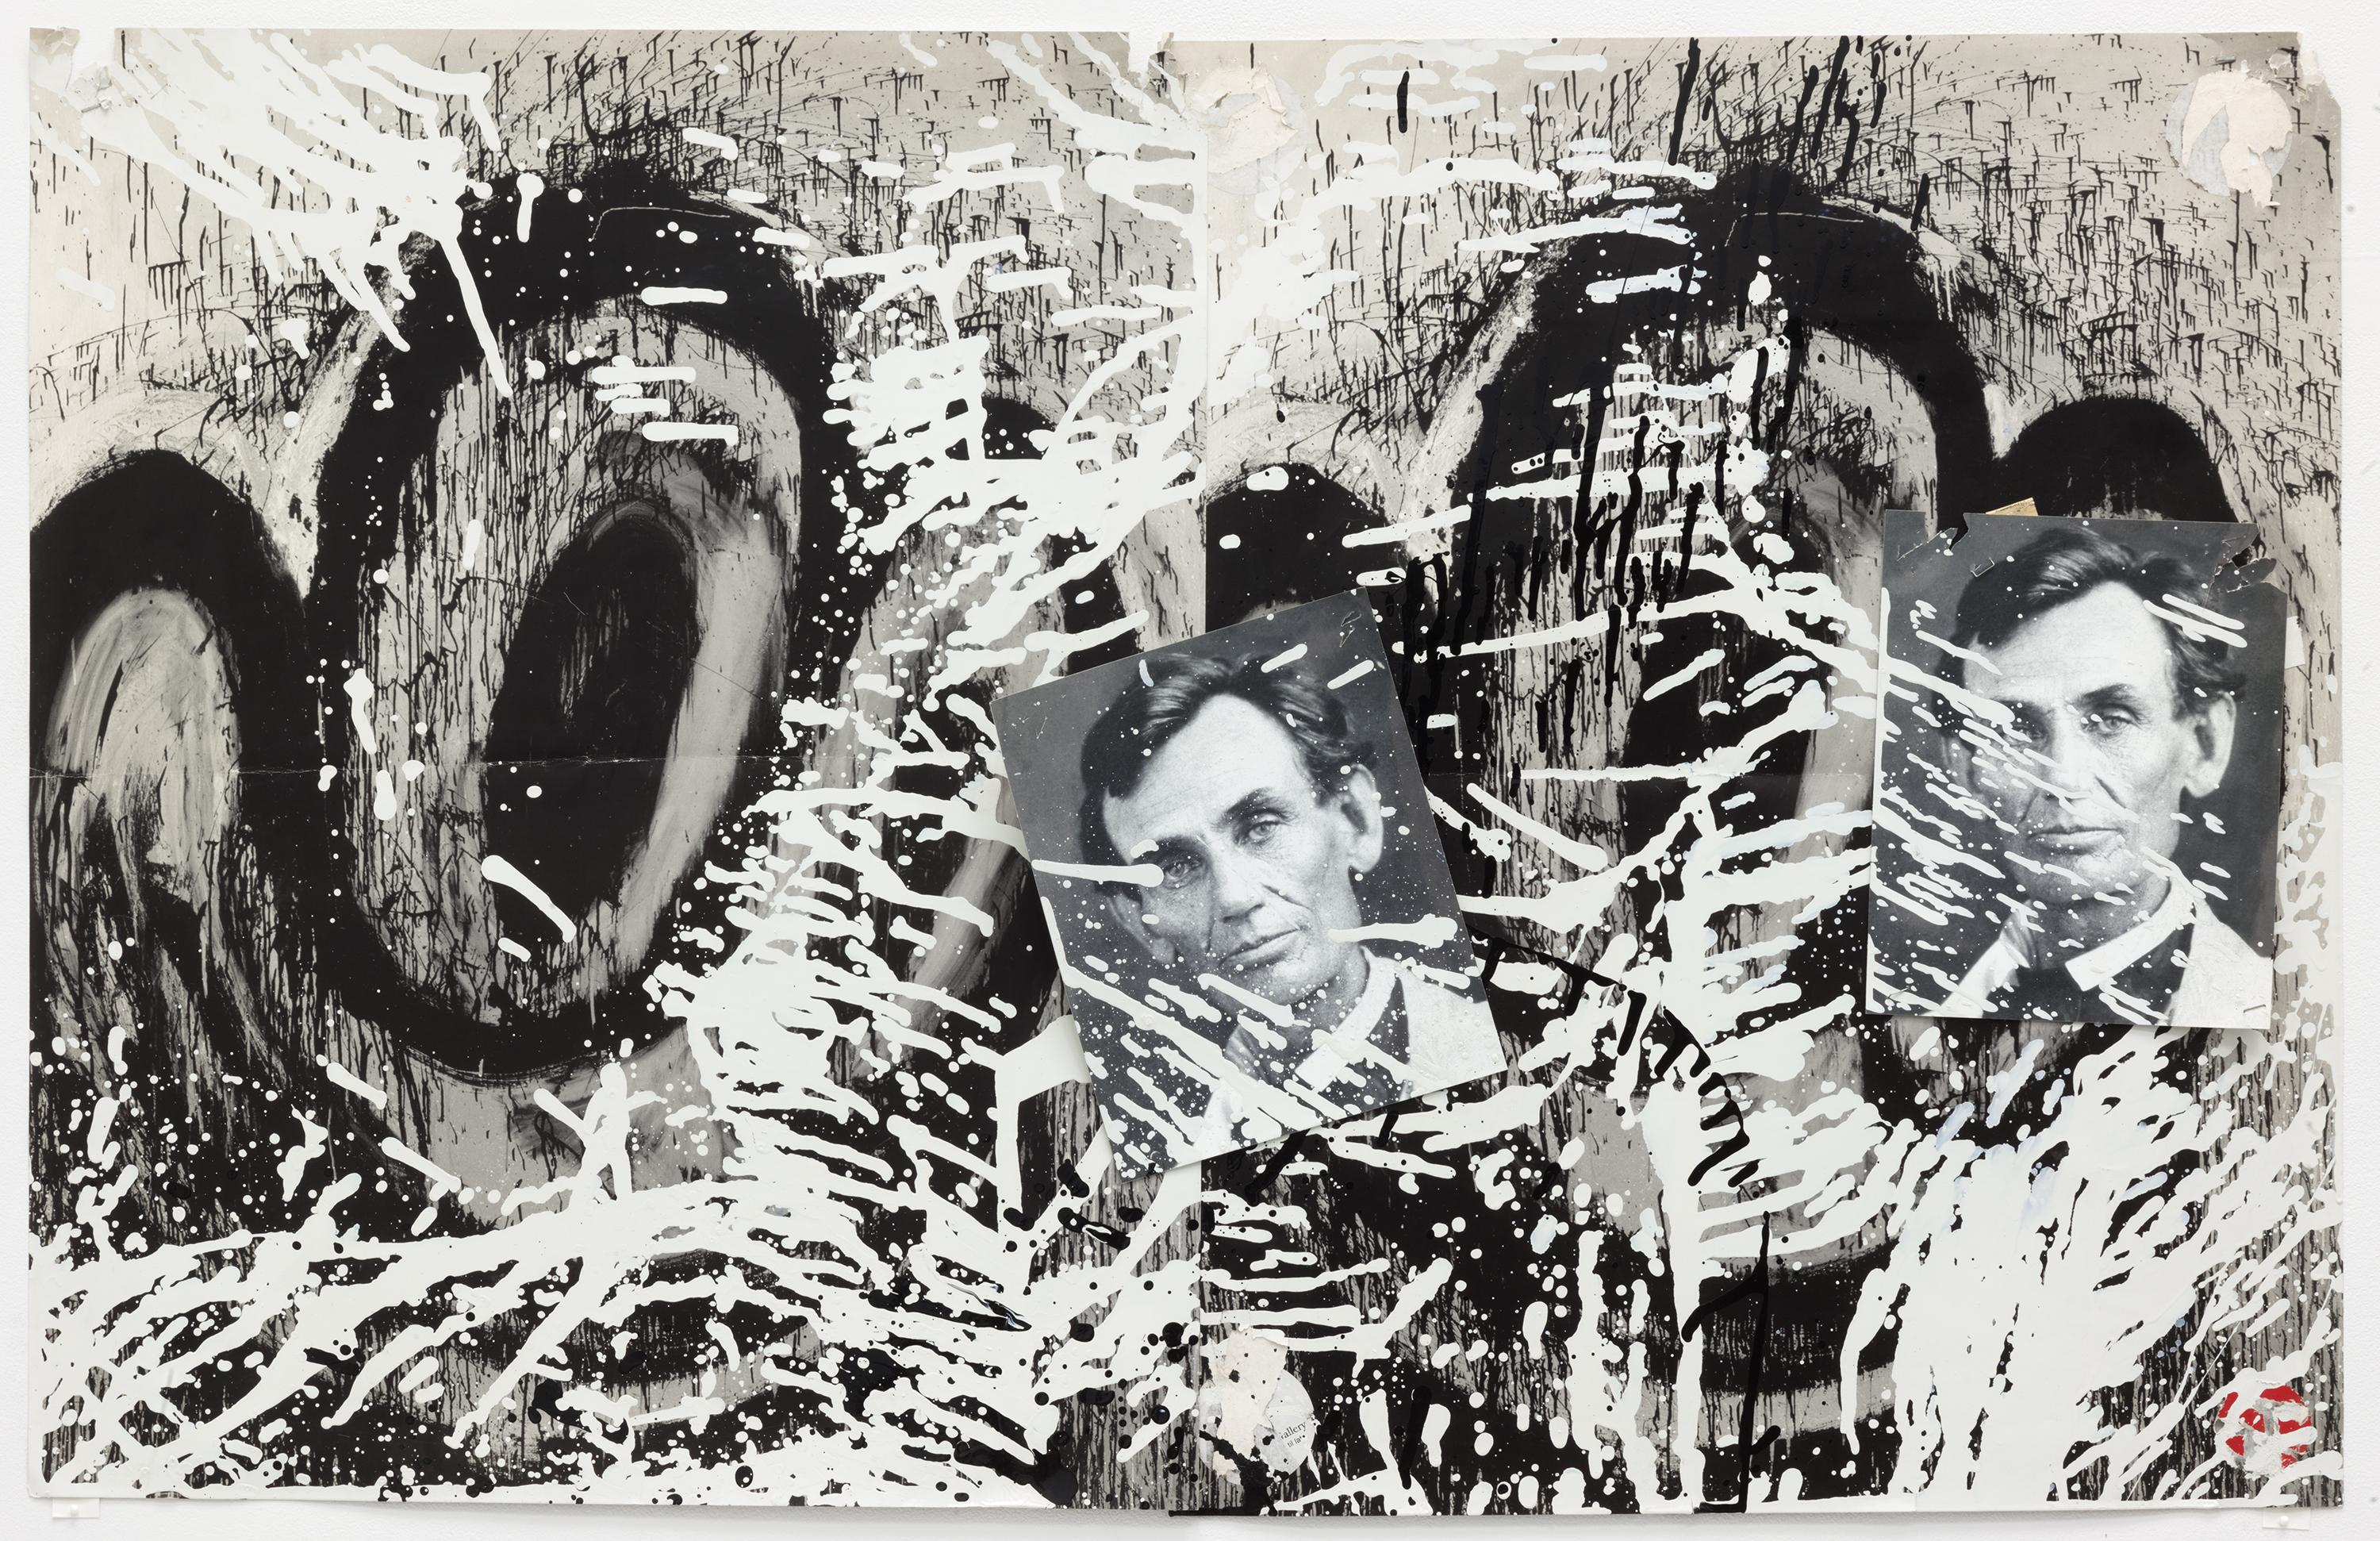 A collage on paper featuring two sets of black and white cartoonish eyes and mouths, on top of which are affixed two photographs of a young Abraham Lincoln, the whole composition splattered with drips of black and white paint.